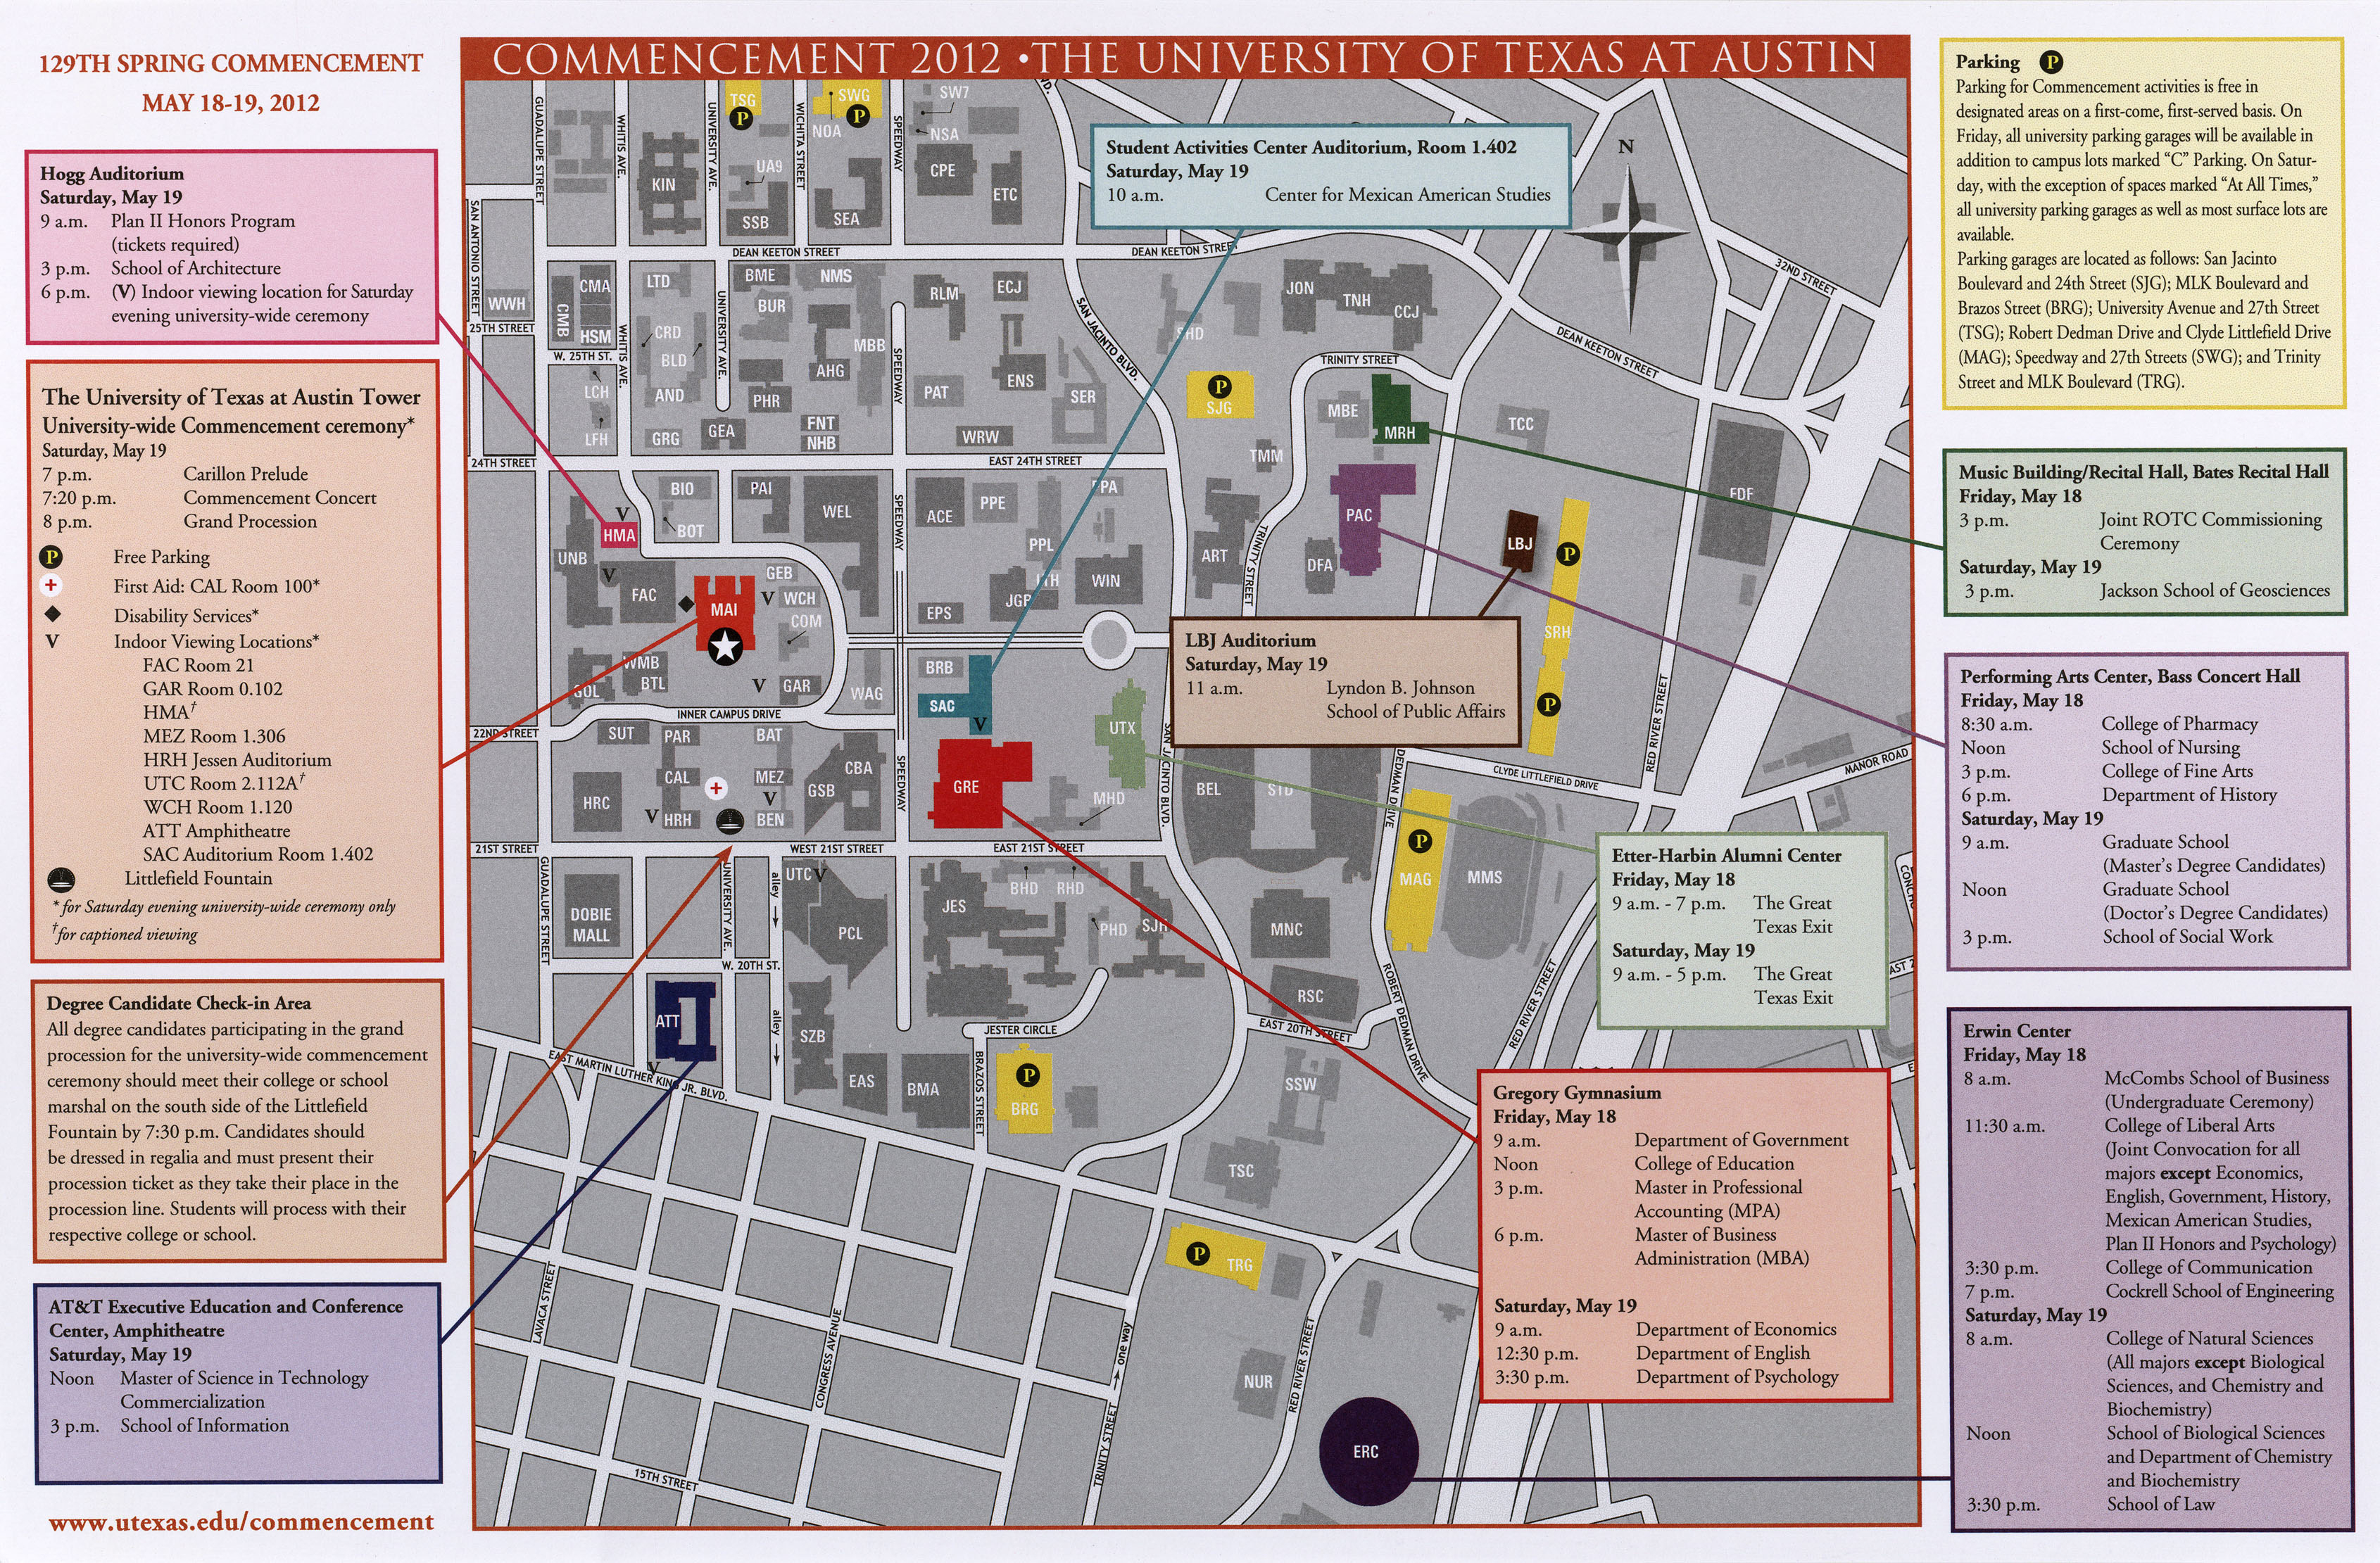 Historical Campus Maps University Of Texas At Austin - Perry - Texas State Dorm Map